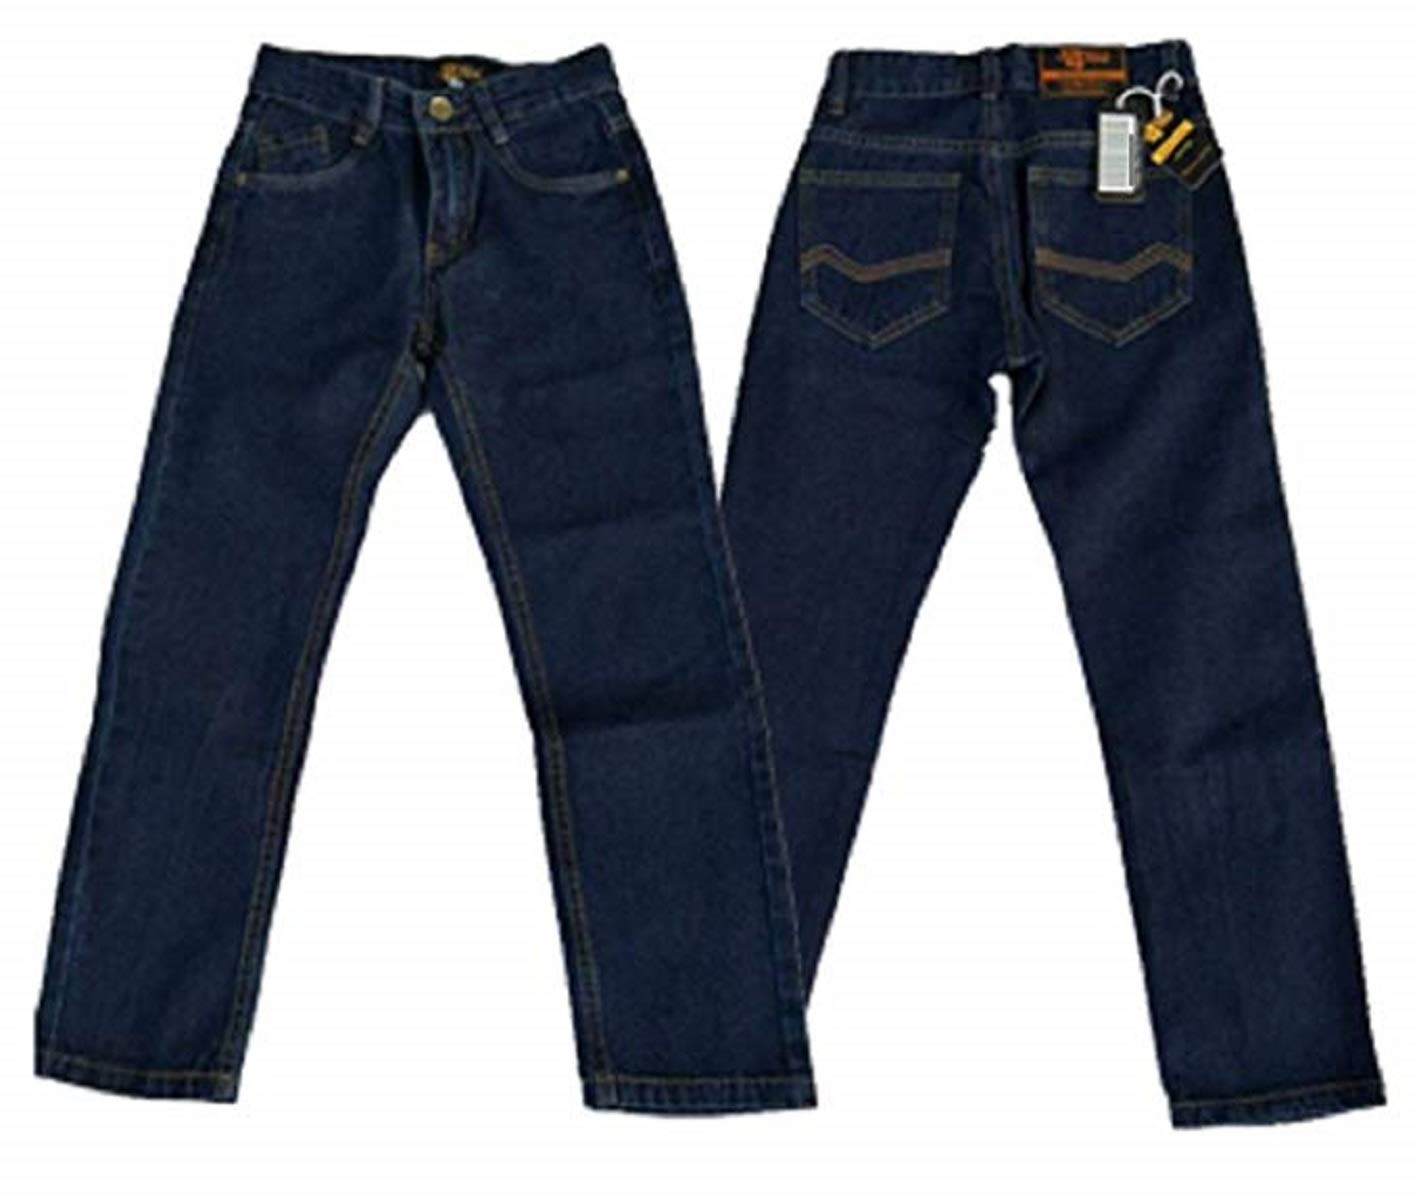 Designer Boys Jeans Adjustable Waist Trousers Denim Wash Toddler Kids 2 3 4 5 6 7 8 9 10 11 12 13 14 15 16 Years